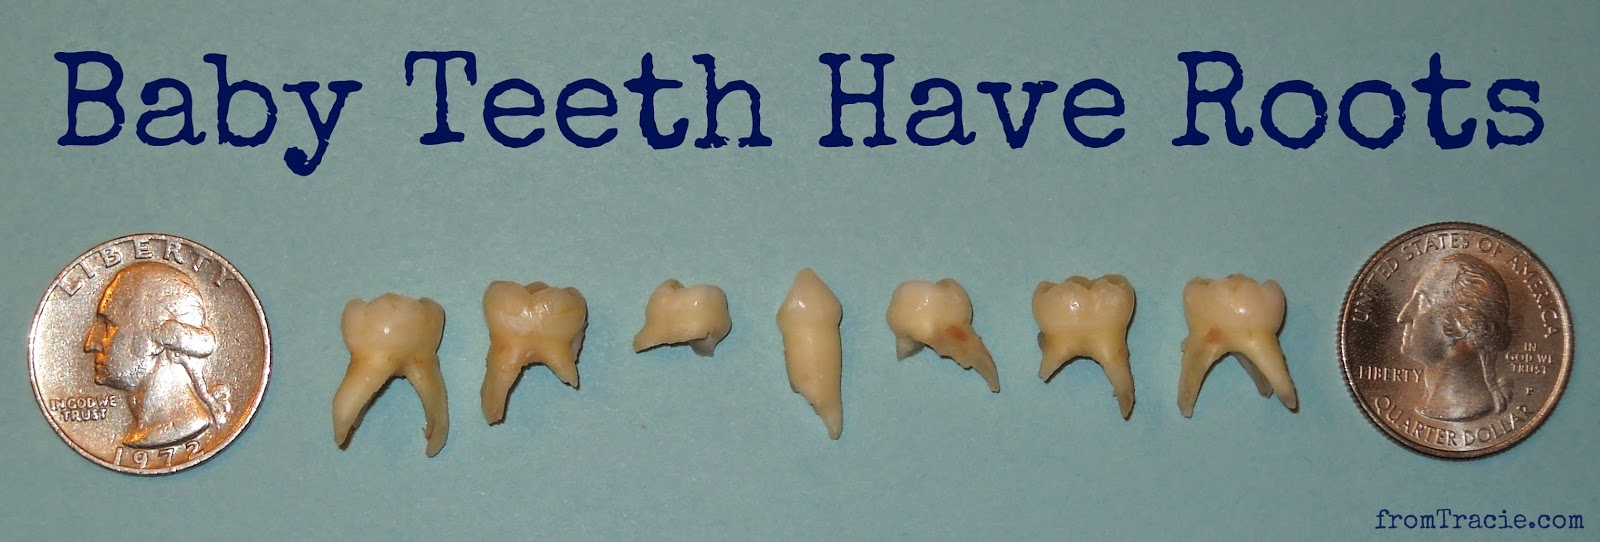 extracted baby teeth with roots